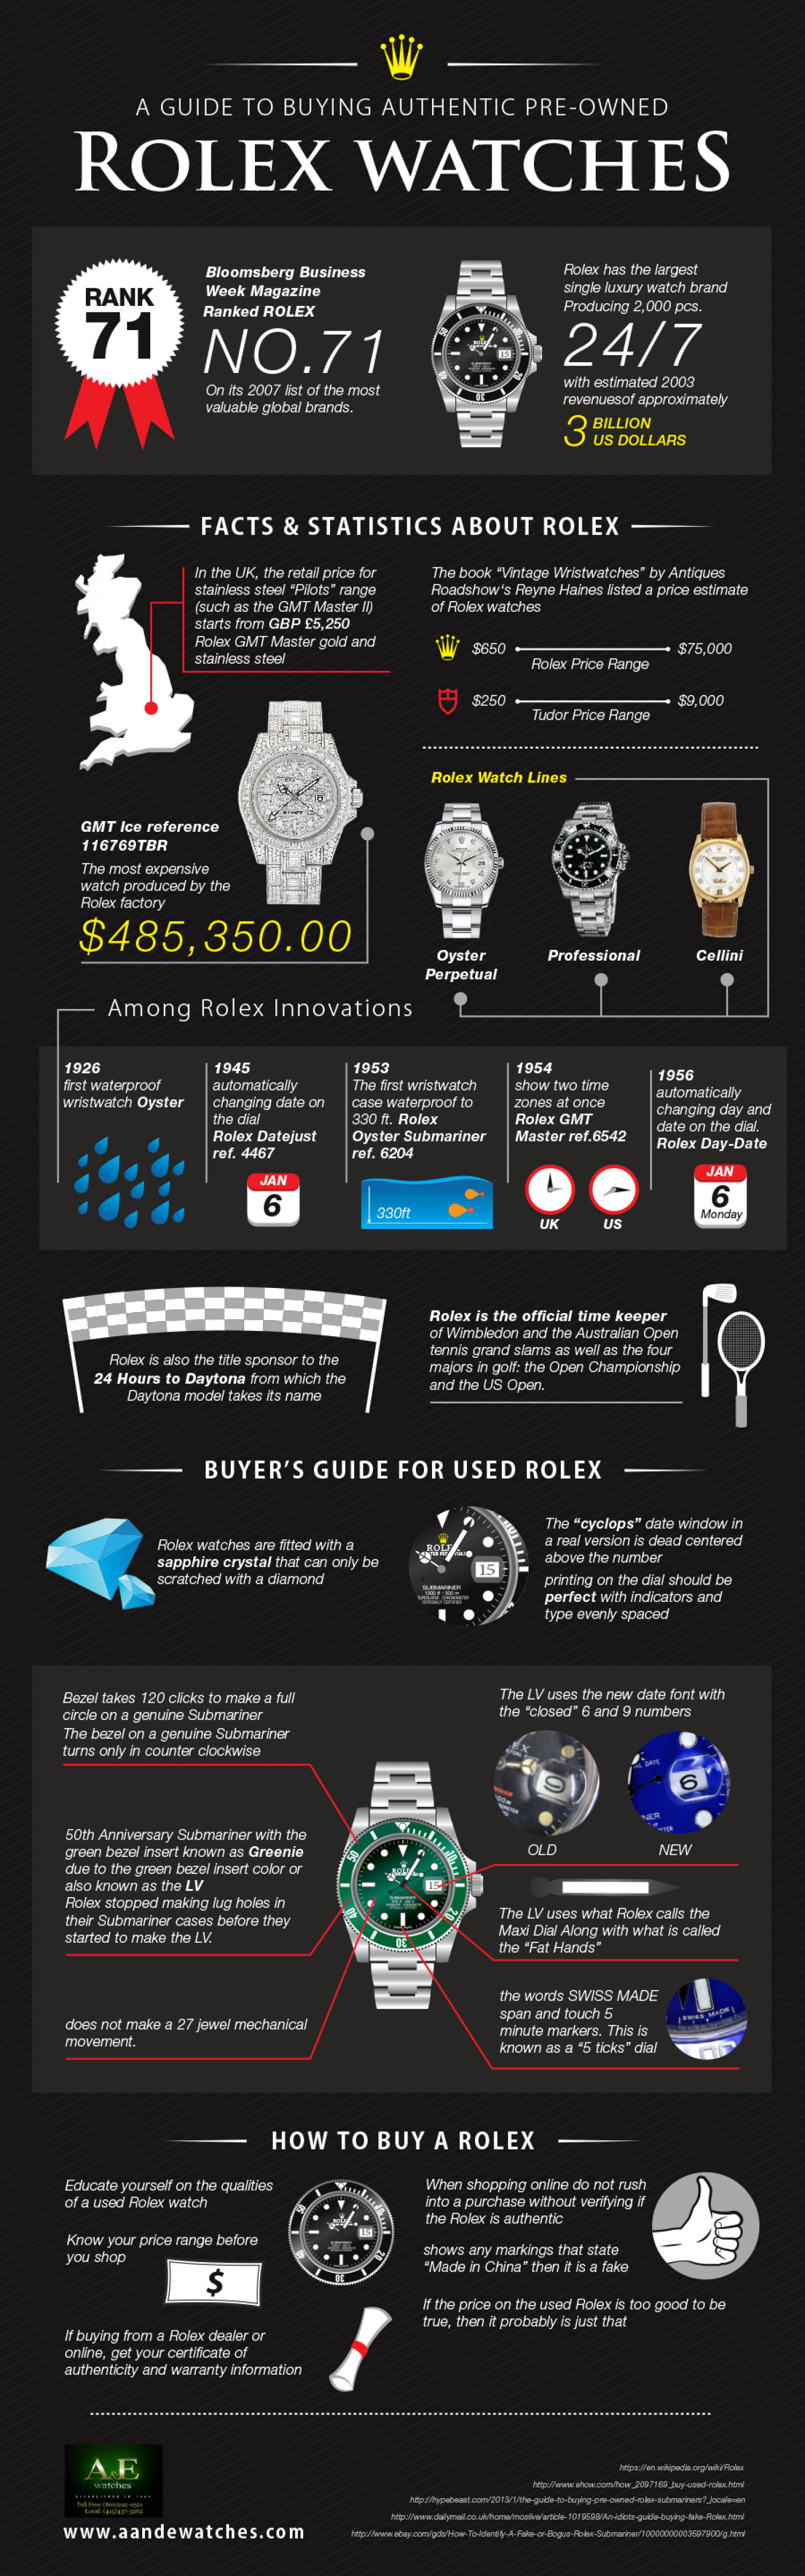 A Guide to Buying Authentic Pre-Owned Rolex Watches Infographic